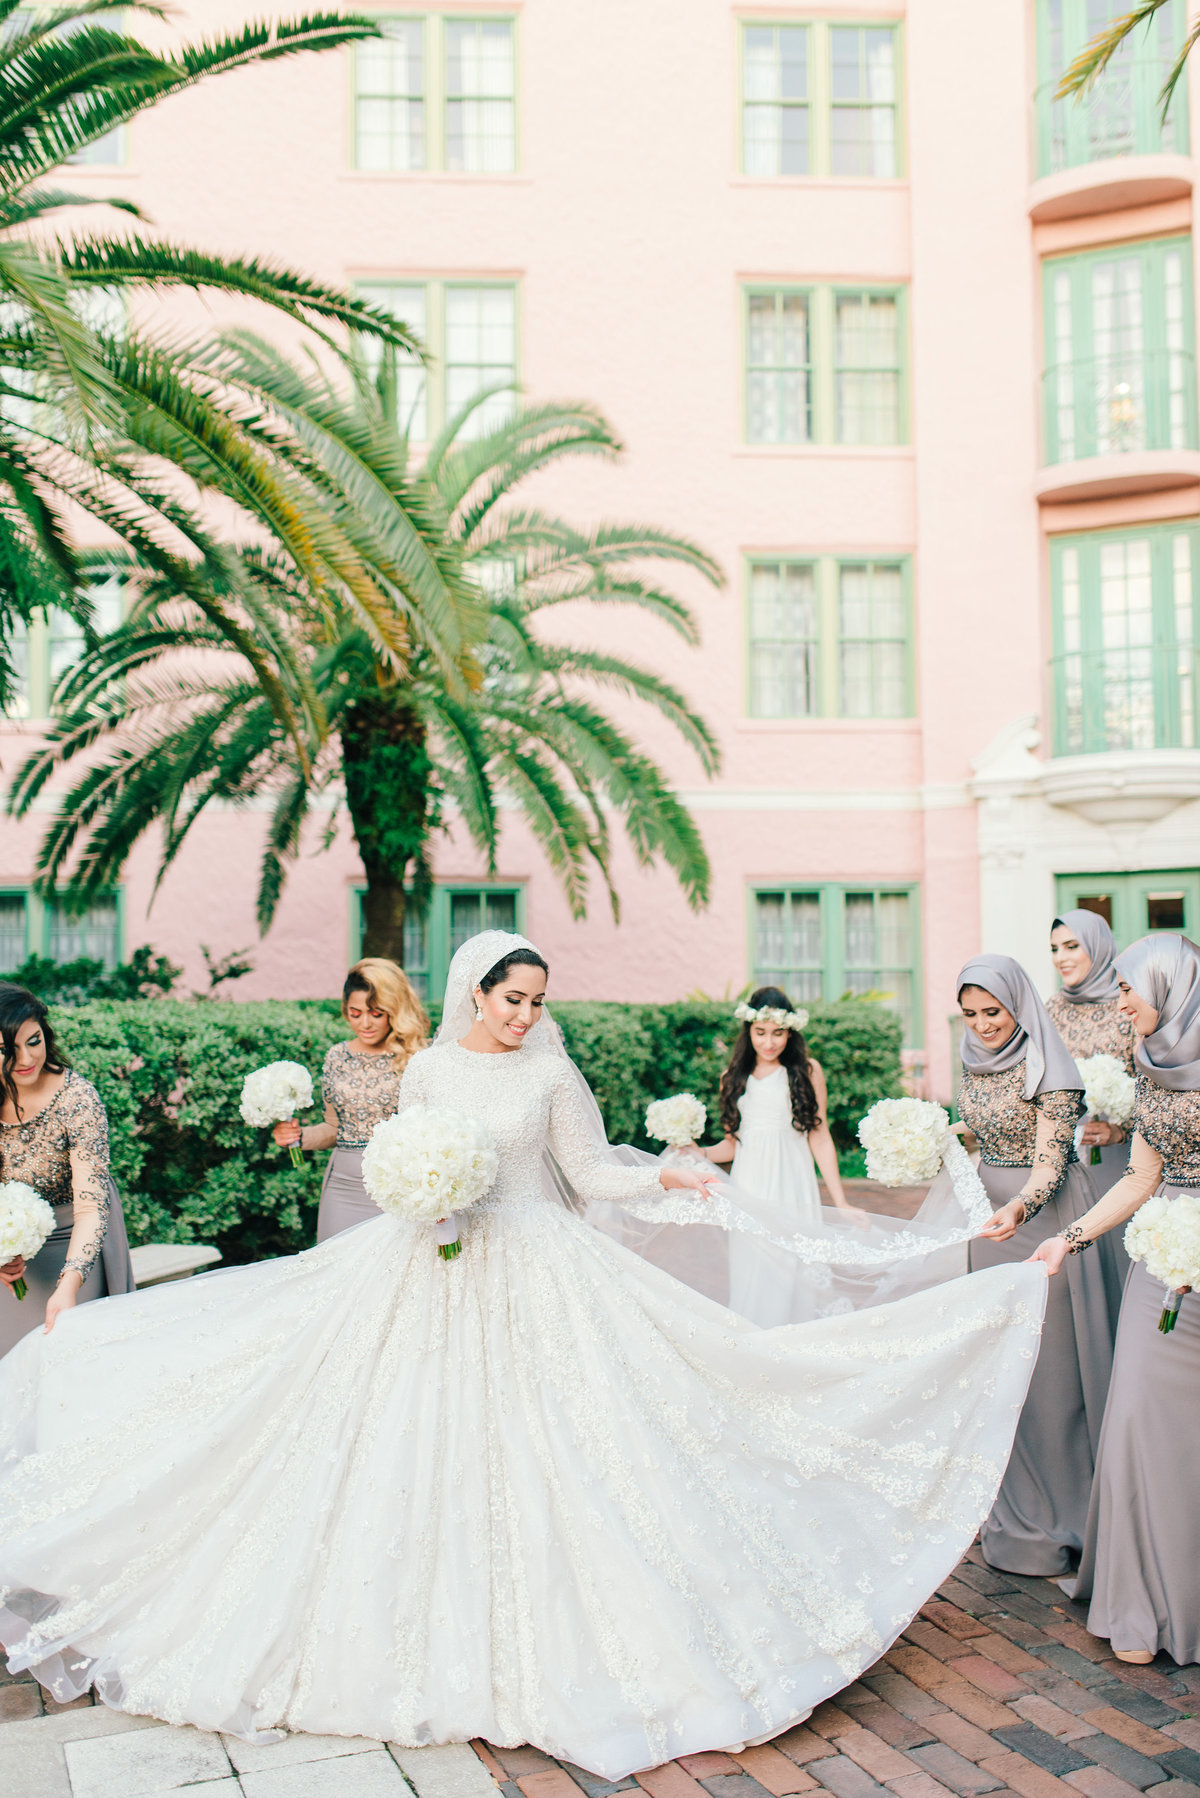 Bride & bridesmaids walking together holding brides dress